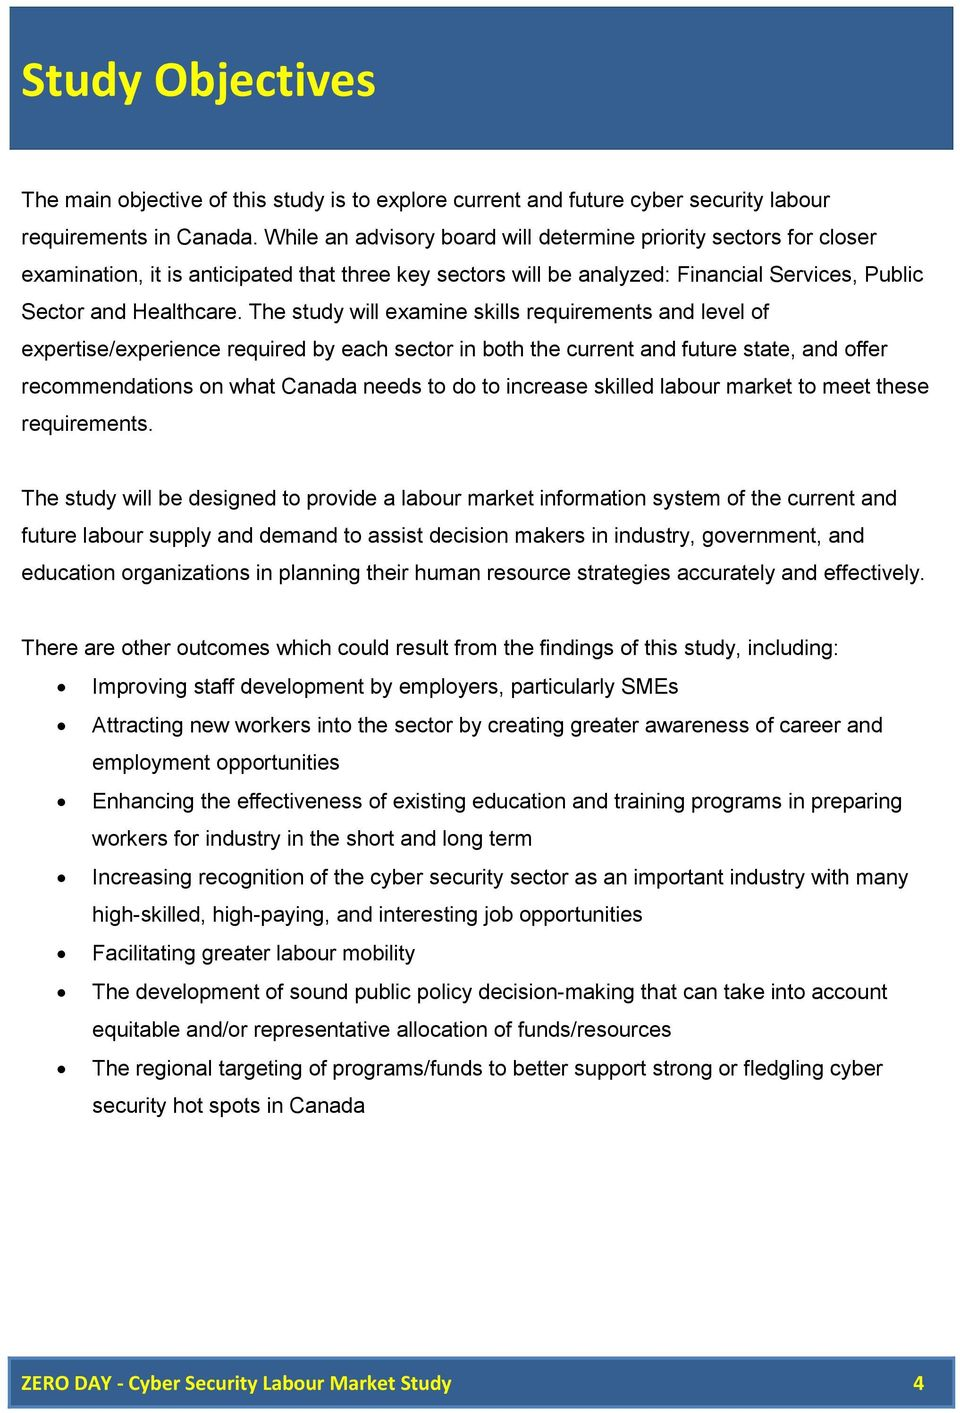 The study will examine skills requirements and level of expertise/experience required by each sector in both the current and future state, and offer recommendations on what Canada needs to do to